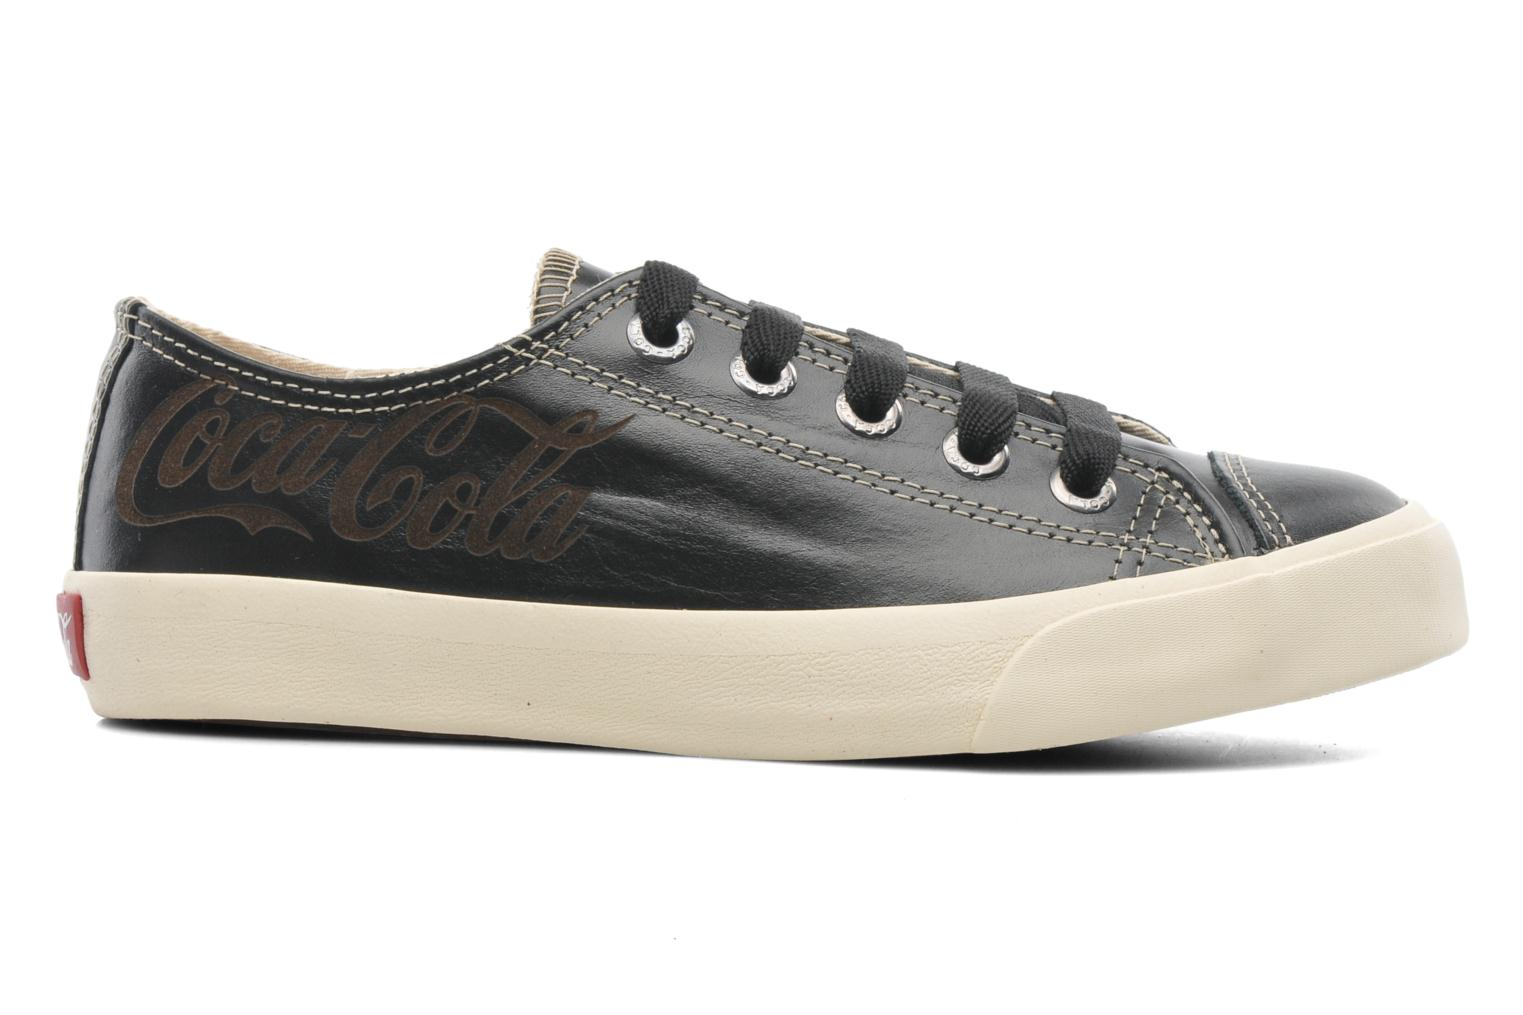 Mujer-Coca-Cola-Shoes-Plain-Leather-Low-Deportivas-Negro-Talla-36